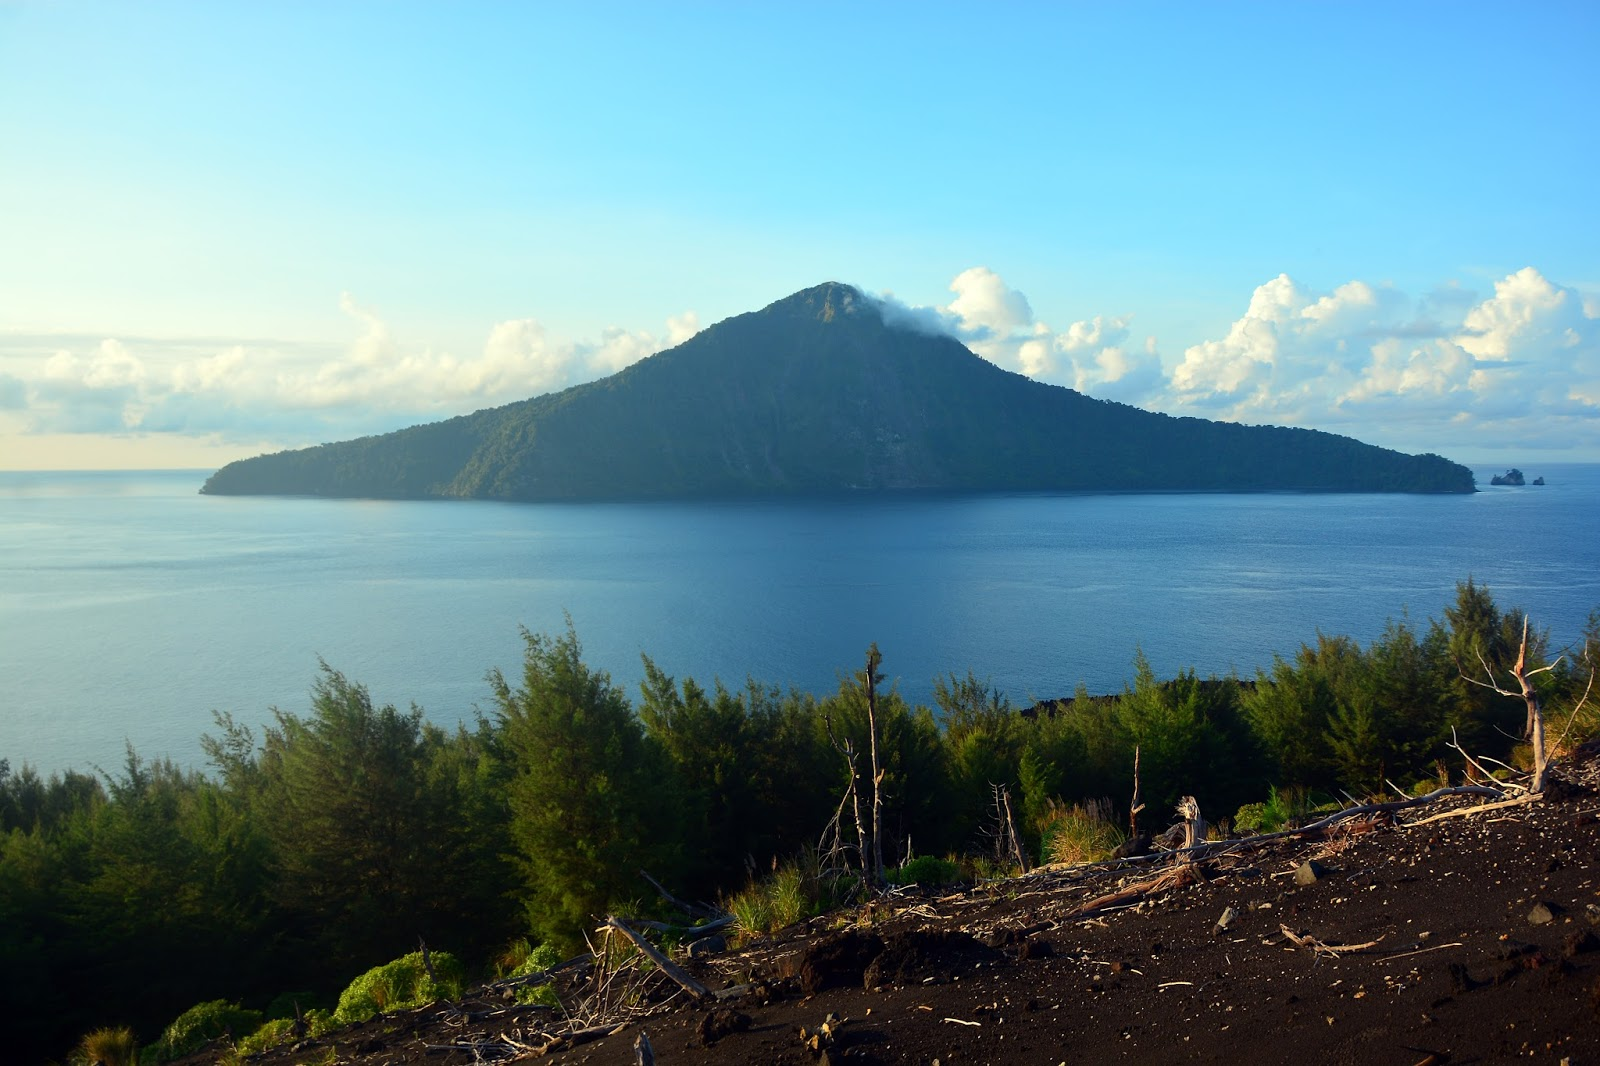 KRAKATAU ONE DAY TRIP